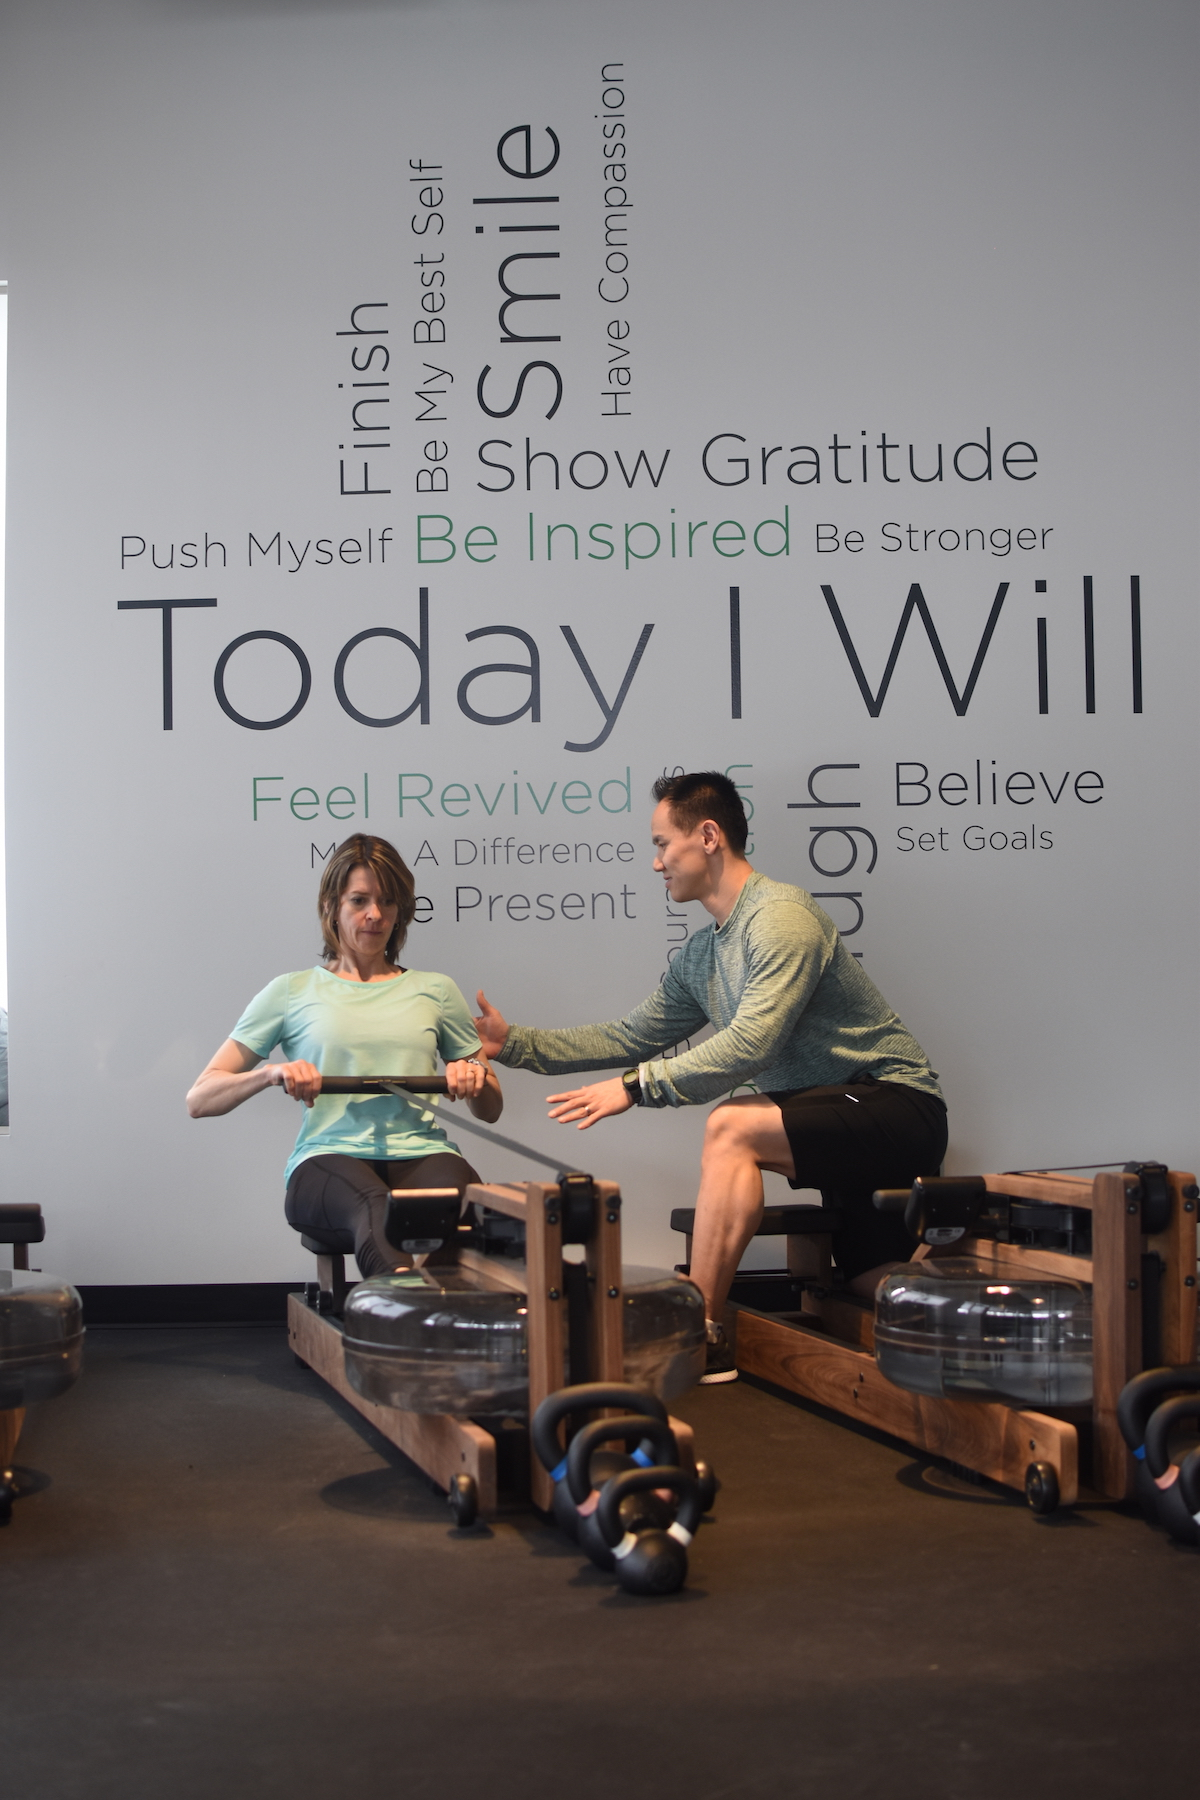 Personalized Group FitnessOur indoor bikes personalize the class to you through our Coach by Colour system. Our smaller class sizes and experienced coaches promote a fitness experience that's personalized to you. Have fun and measure progress. -